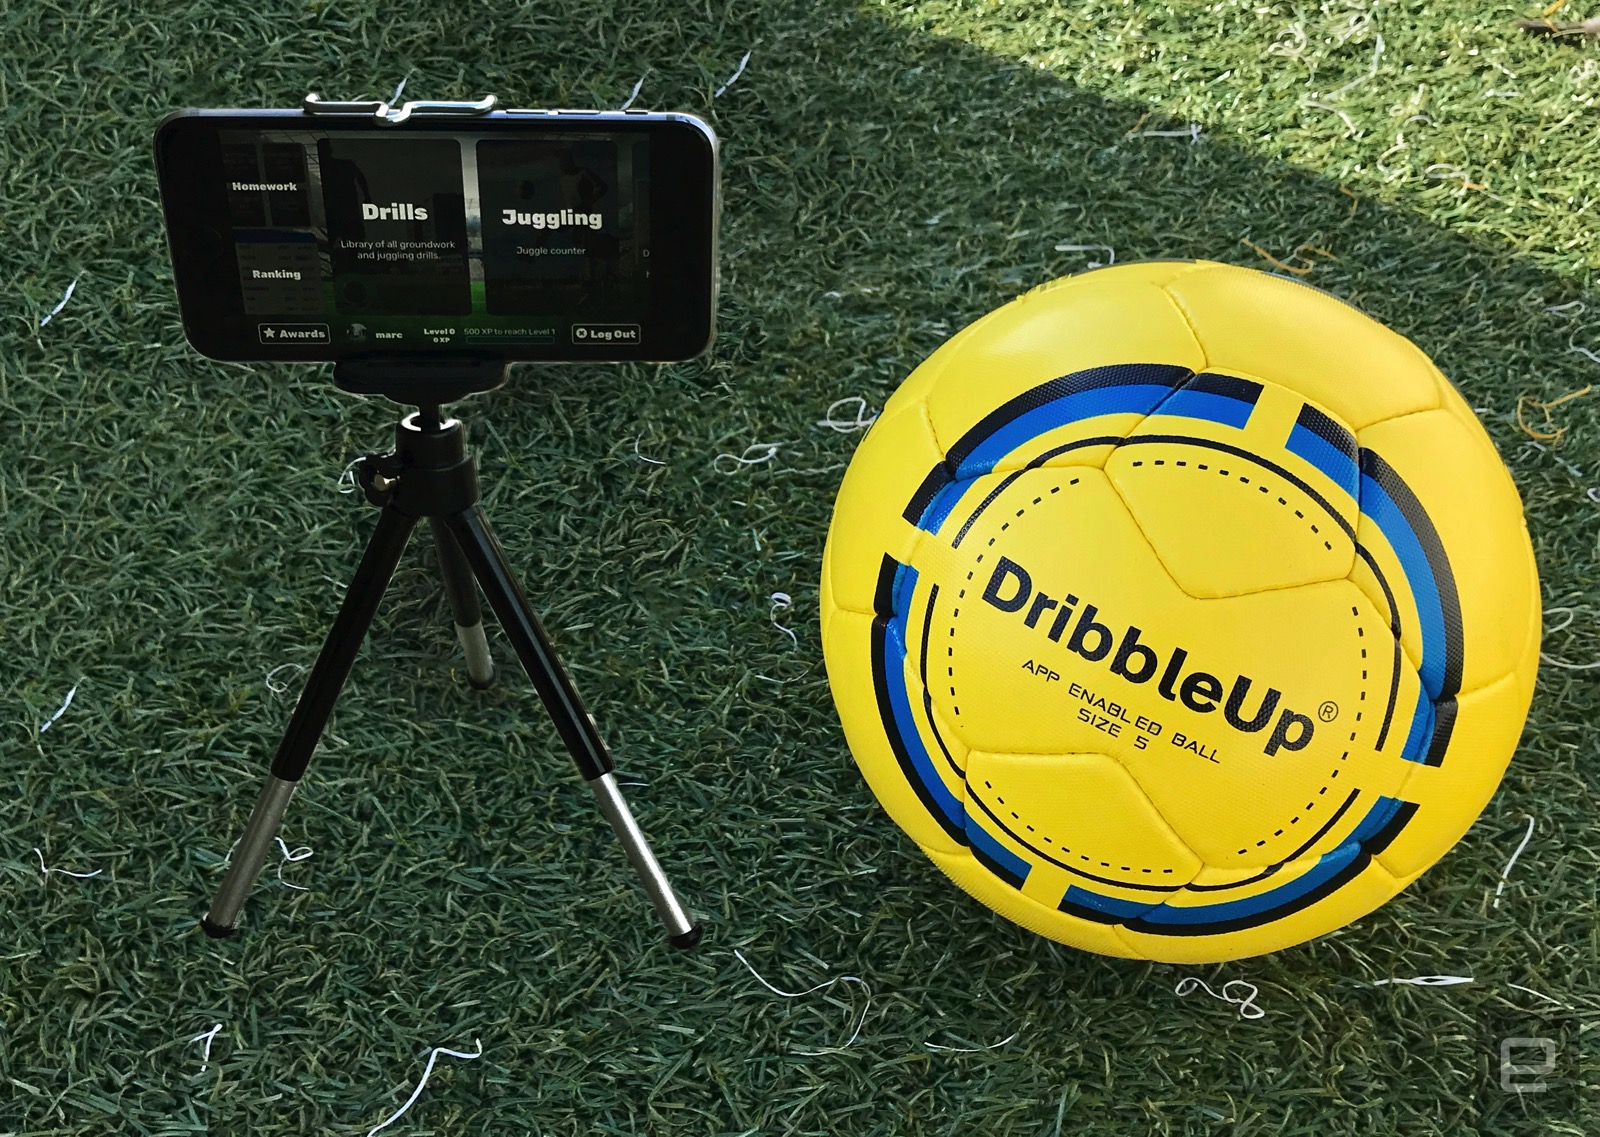 Best Gifts For Soccer Players - DribbleUp App Connected Soccer Ball